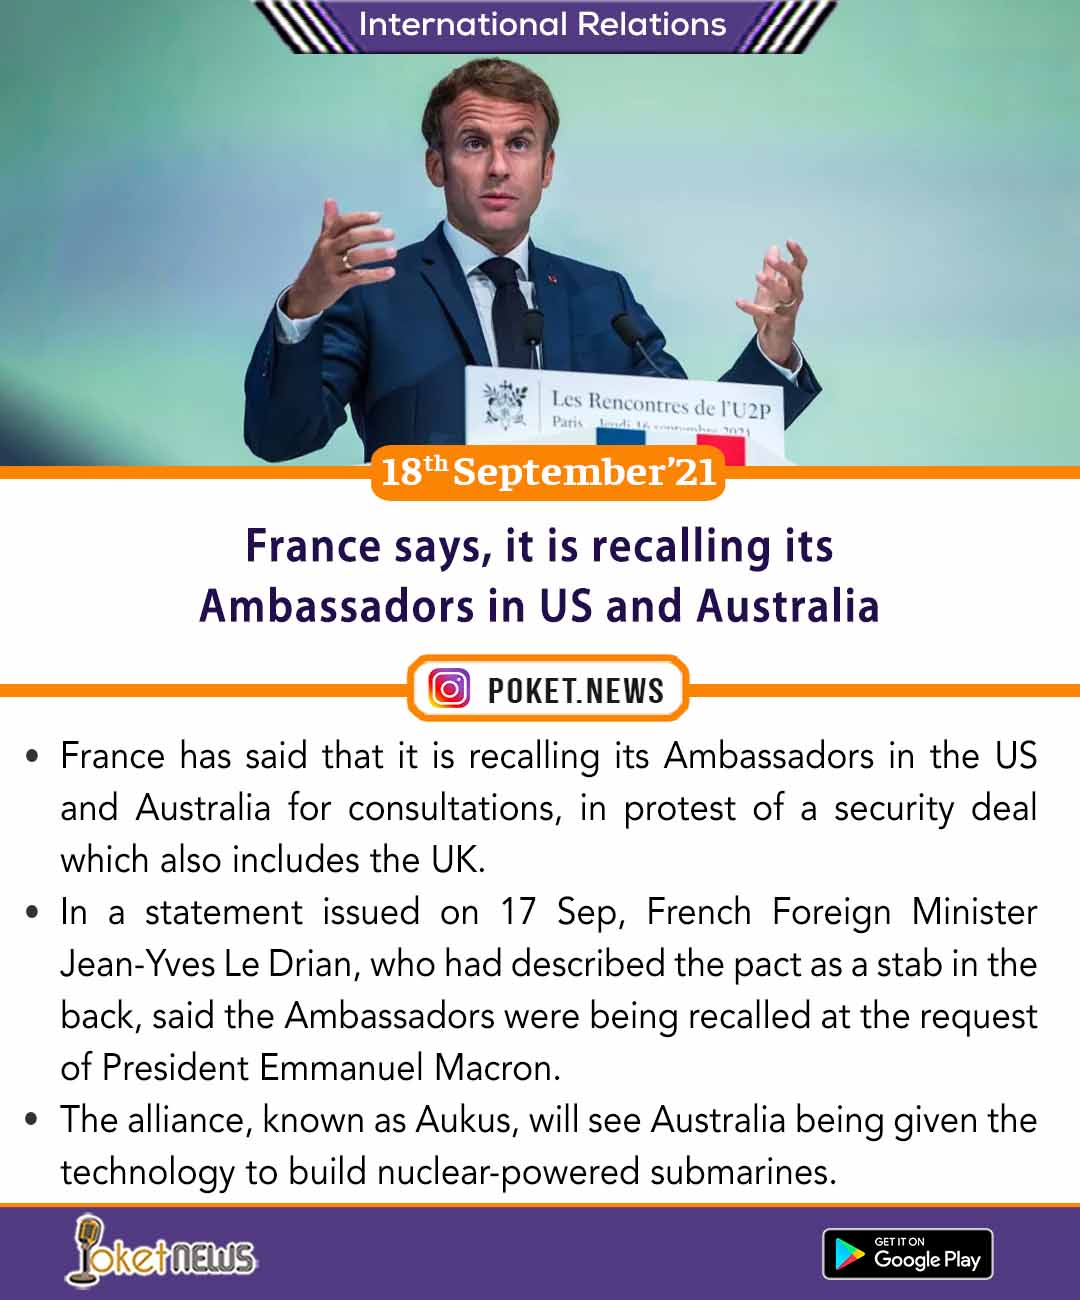 France says, it is recalling its Ambassadors in US and Australia